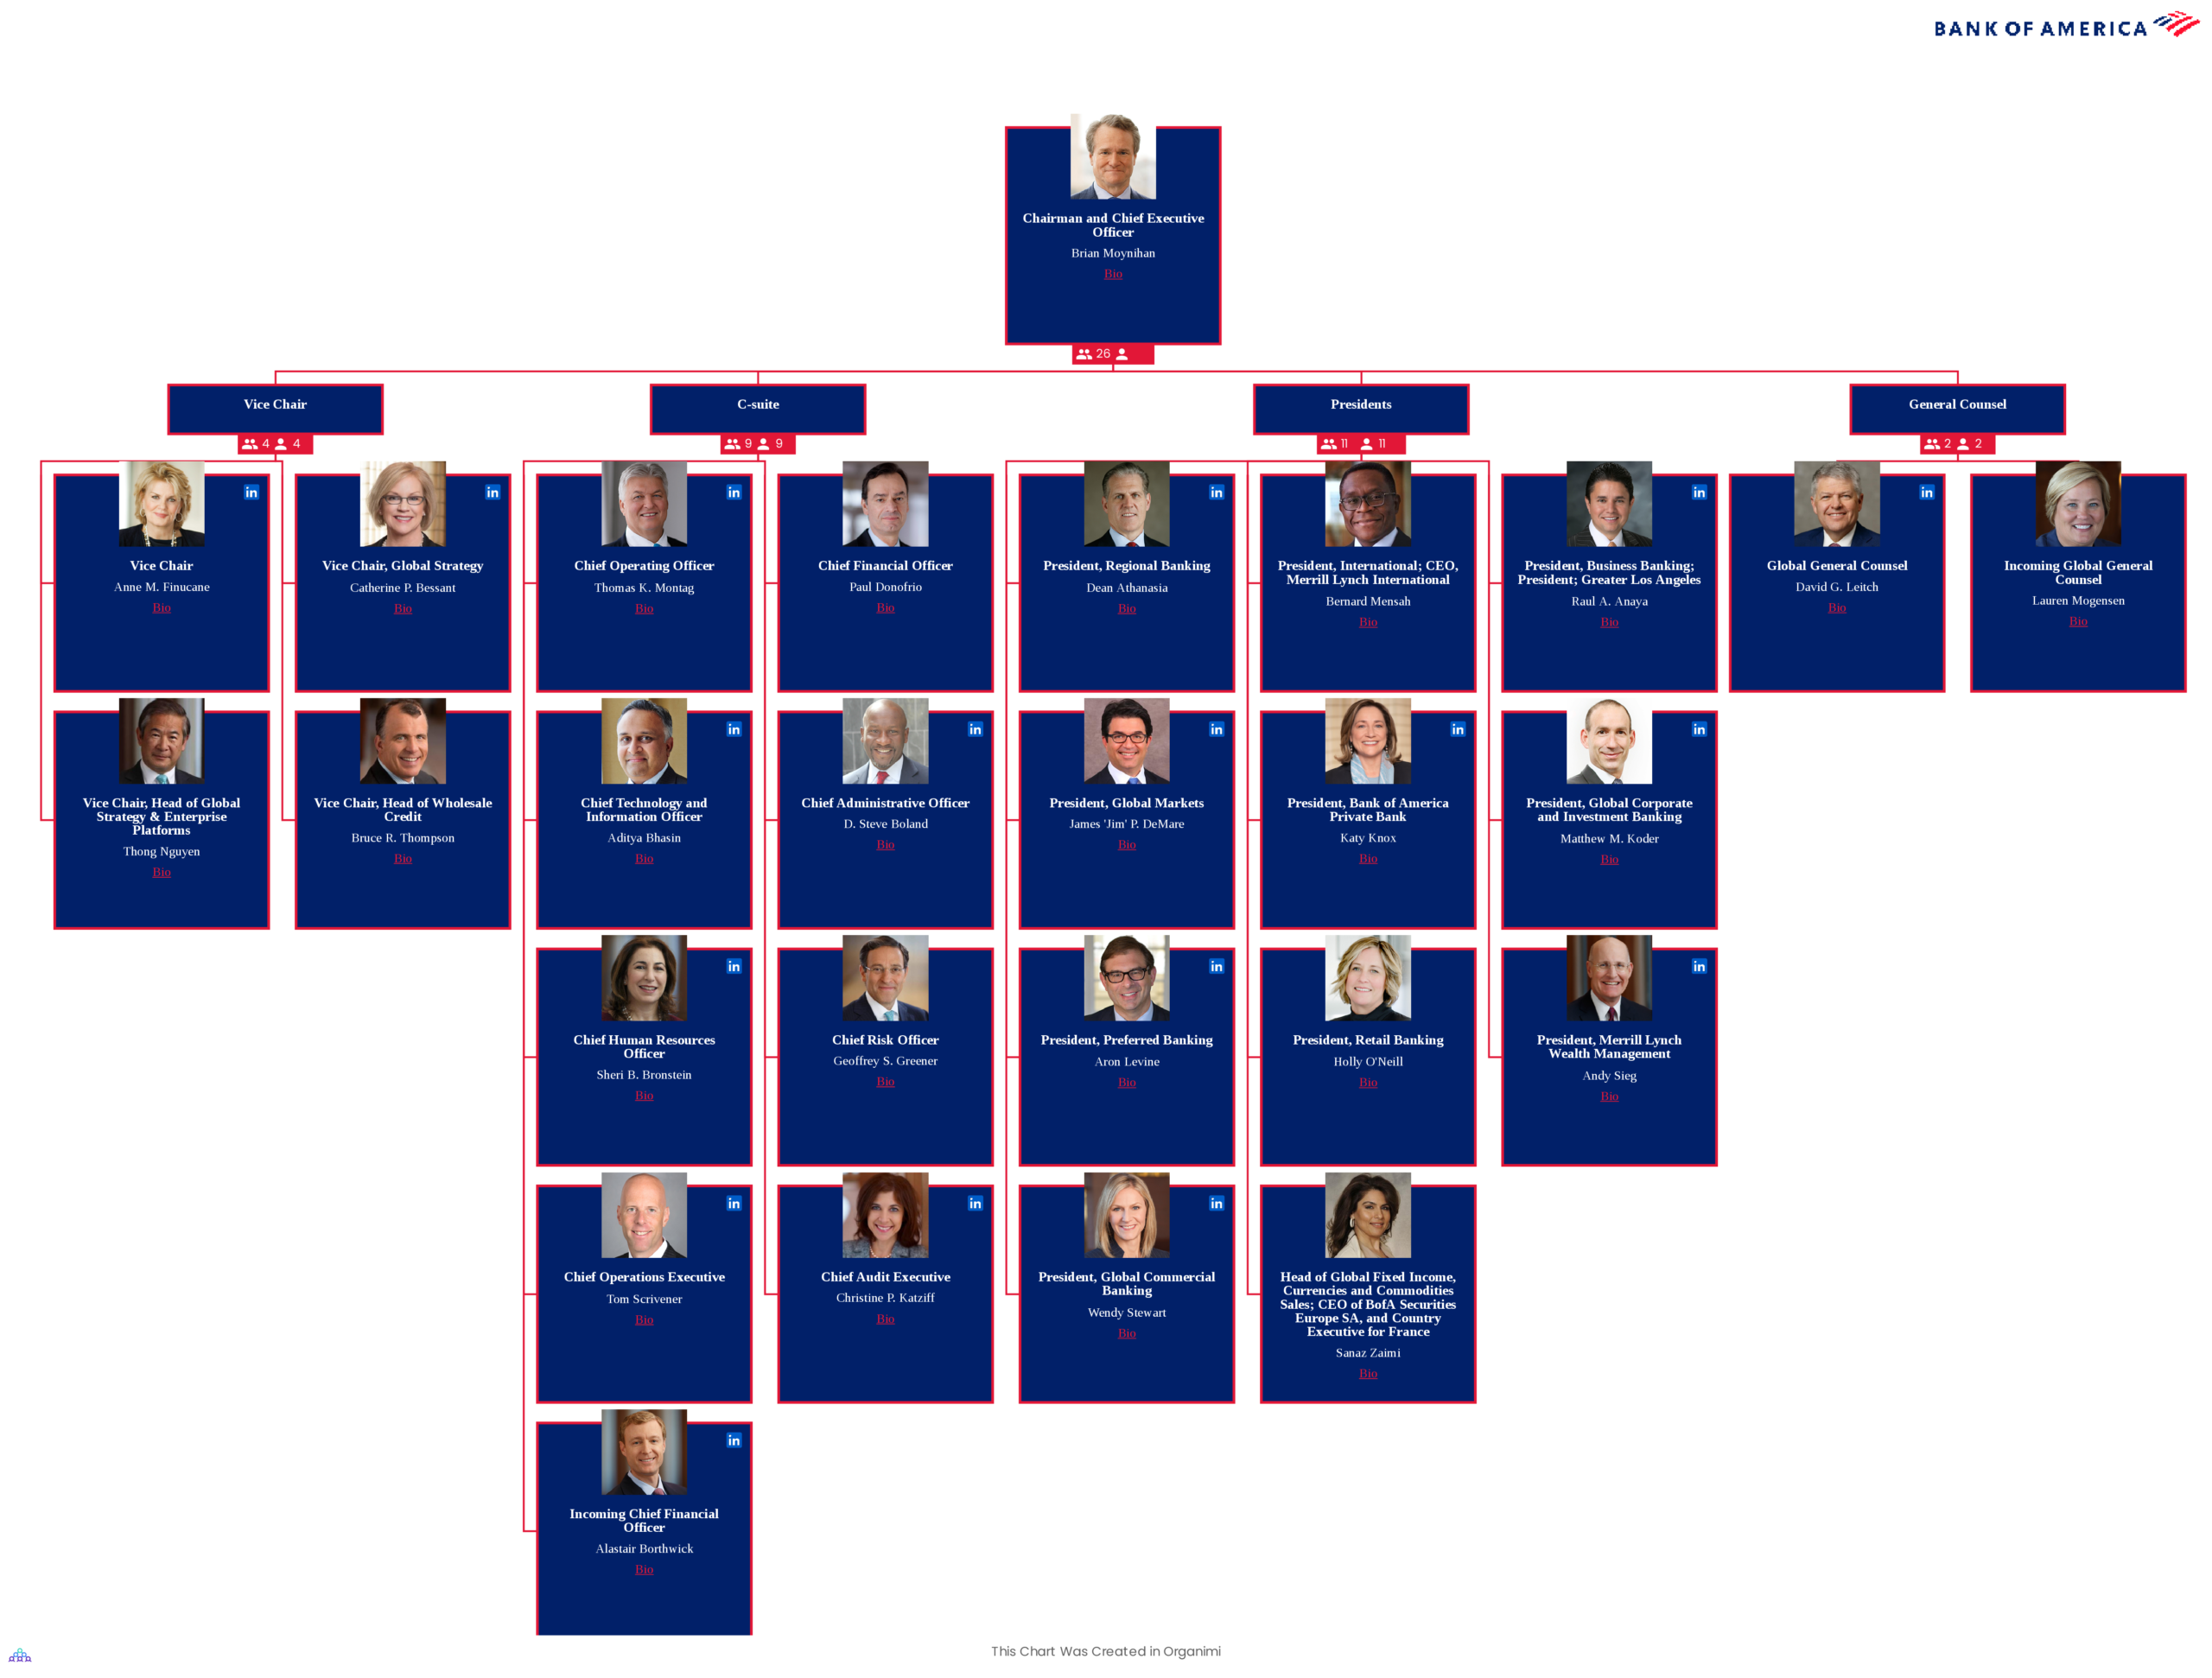 Bank of America Organizational Structure